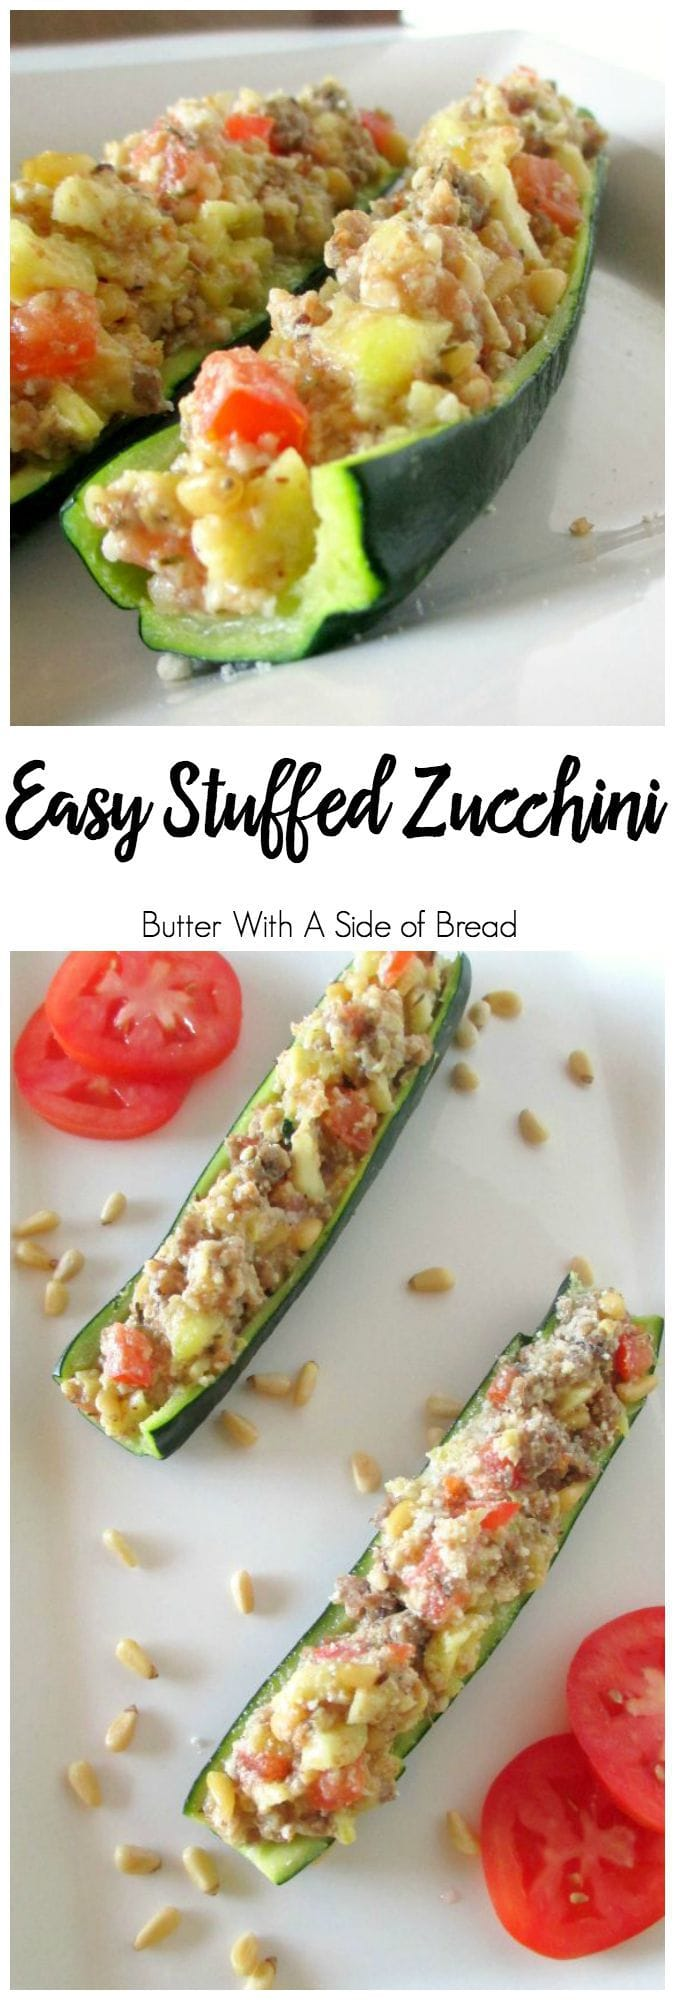 Our Easy Stuffed Zucchini is a simple, flavorful recipe that everyone enjoys. You can make the entire dish in the microwave- or put it on the grill and it's ready in minutes! Easy #zucchini recipe from Butter With A Side of Bread